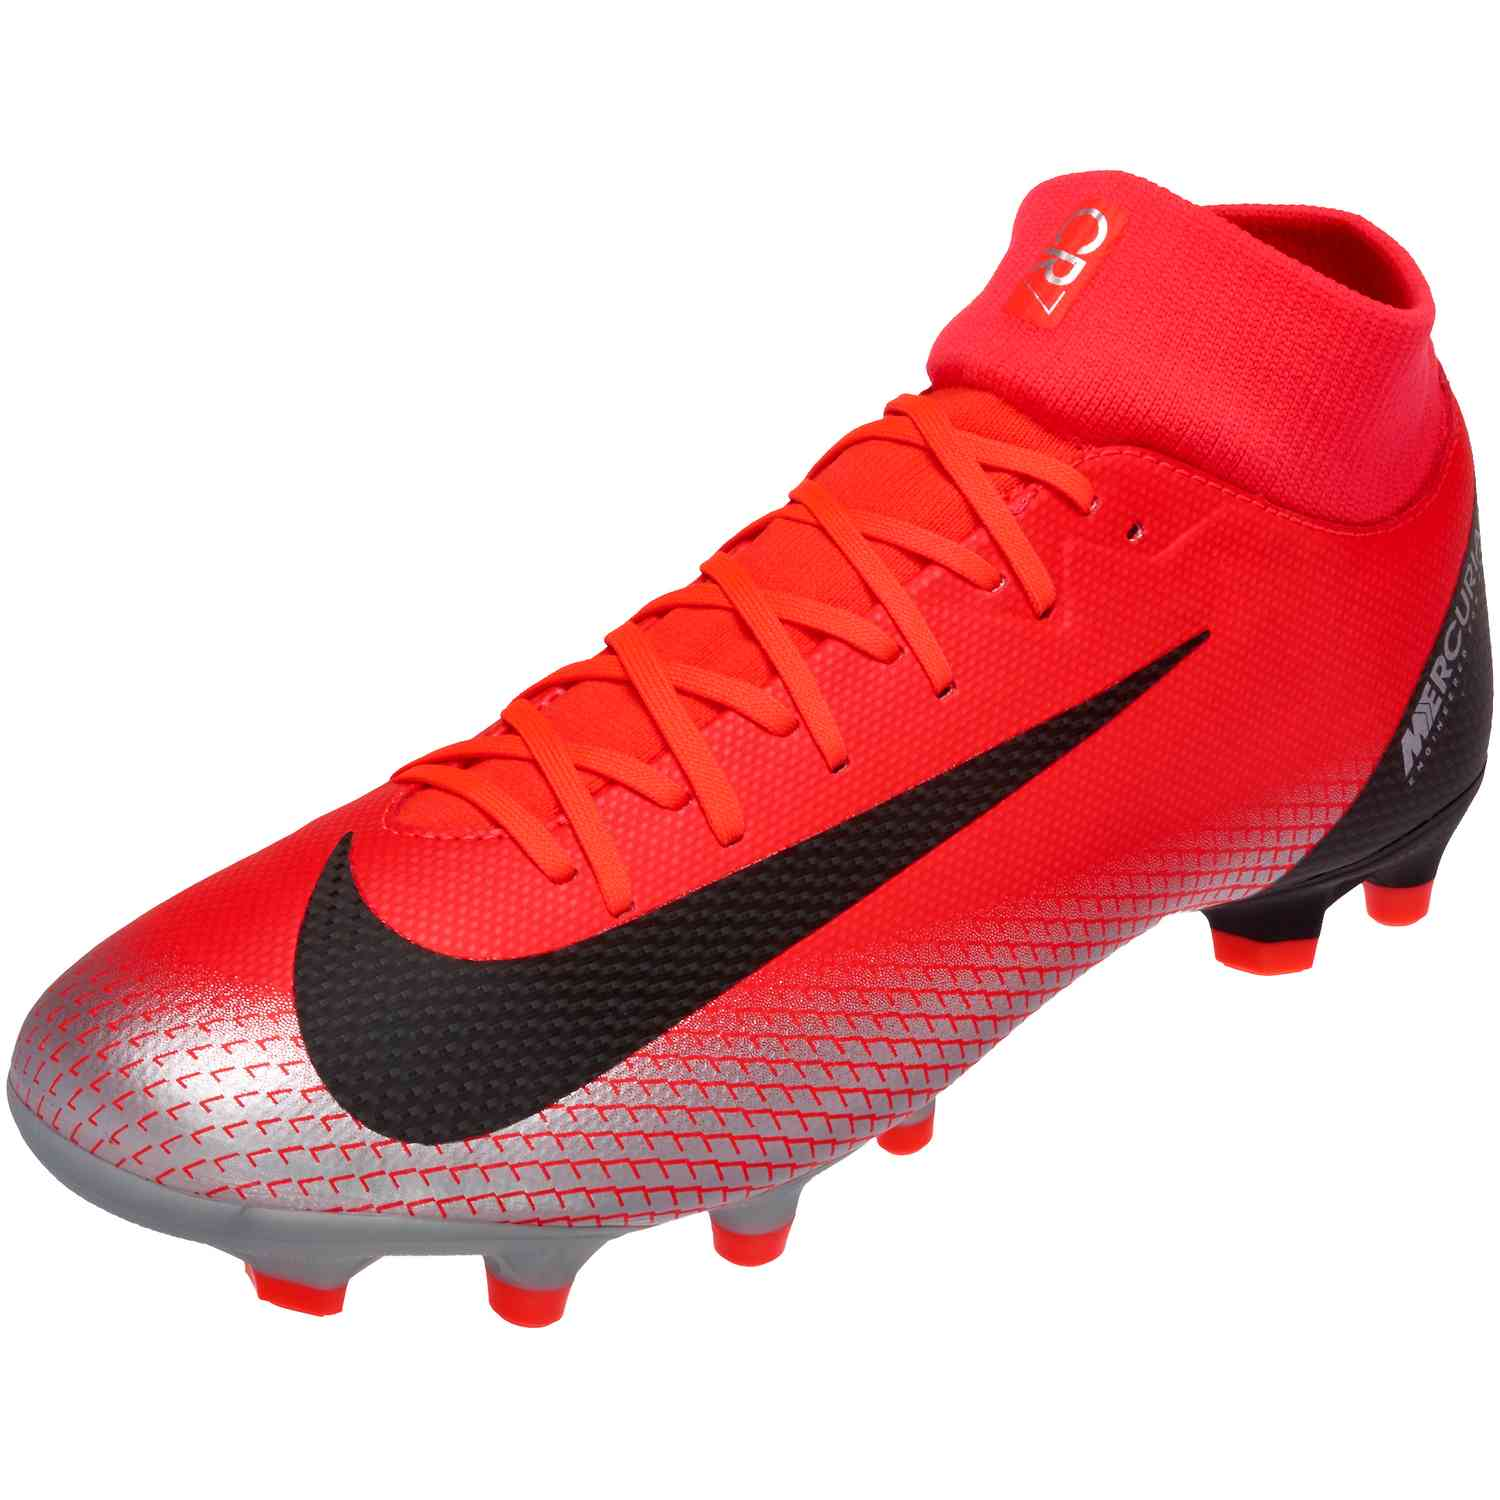 6750e2bd2 Nike Mercurial Superfly 6 Academy FG – CR7 – Bright Crimson Black Chrome Dark  Grey